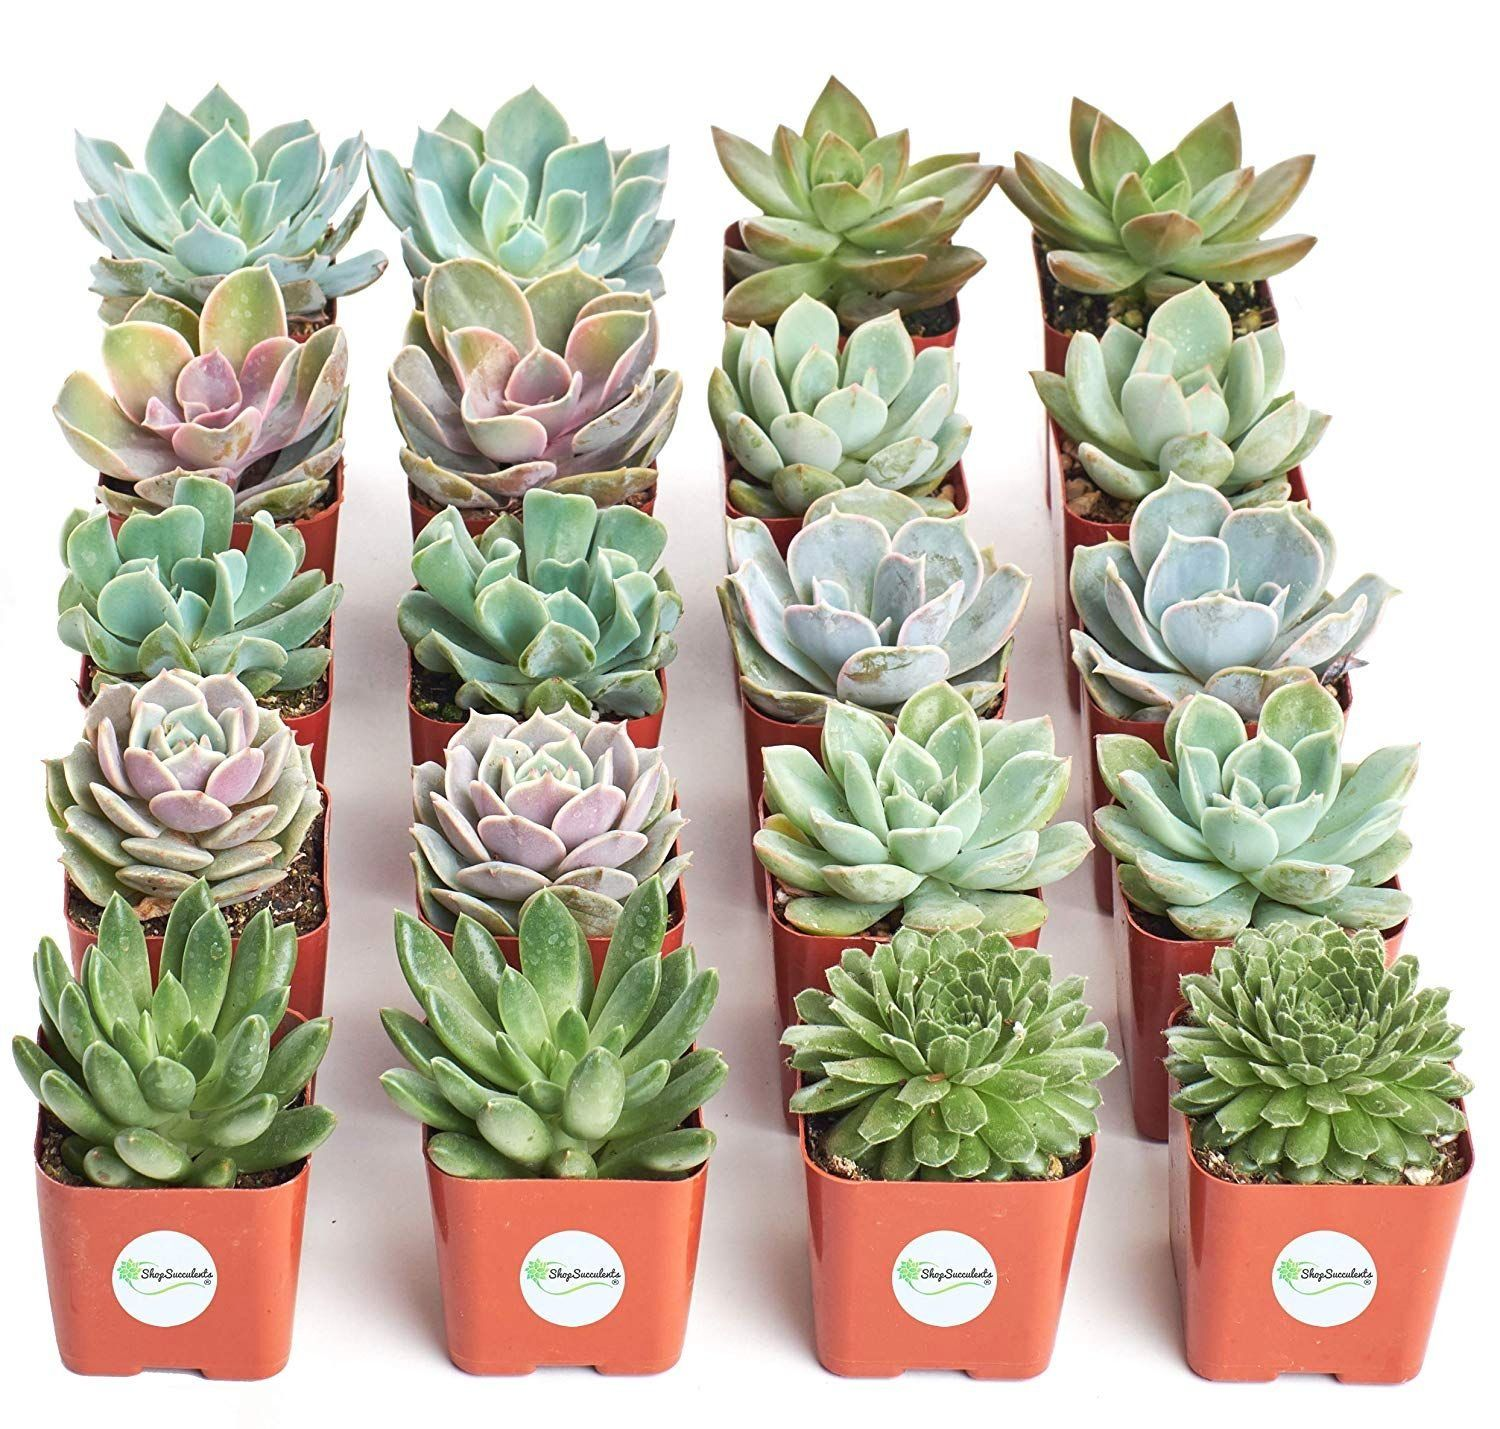 Home Botanicals Rosette Succulent Collection Of 20 Walmart Com 1000 In 2020 Succulents Large Succulent Plants Planting Succulents